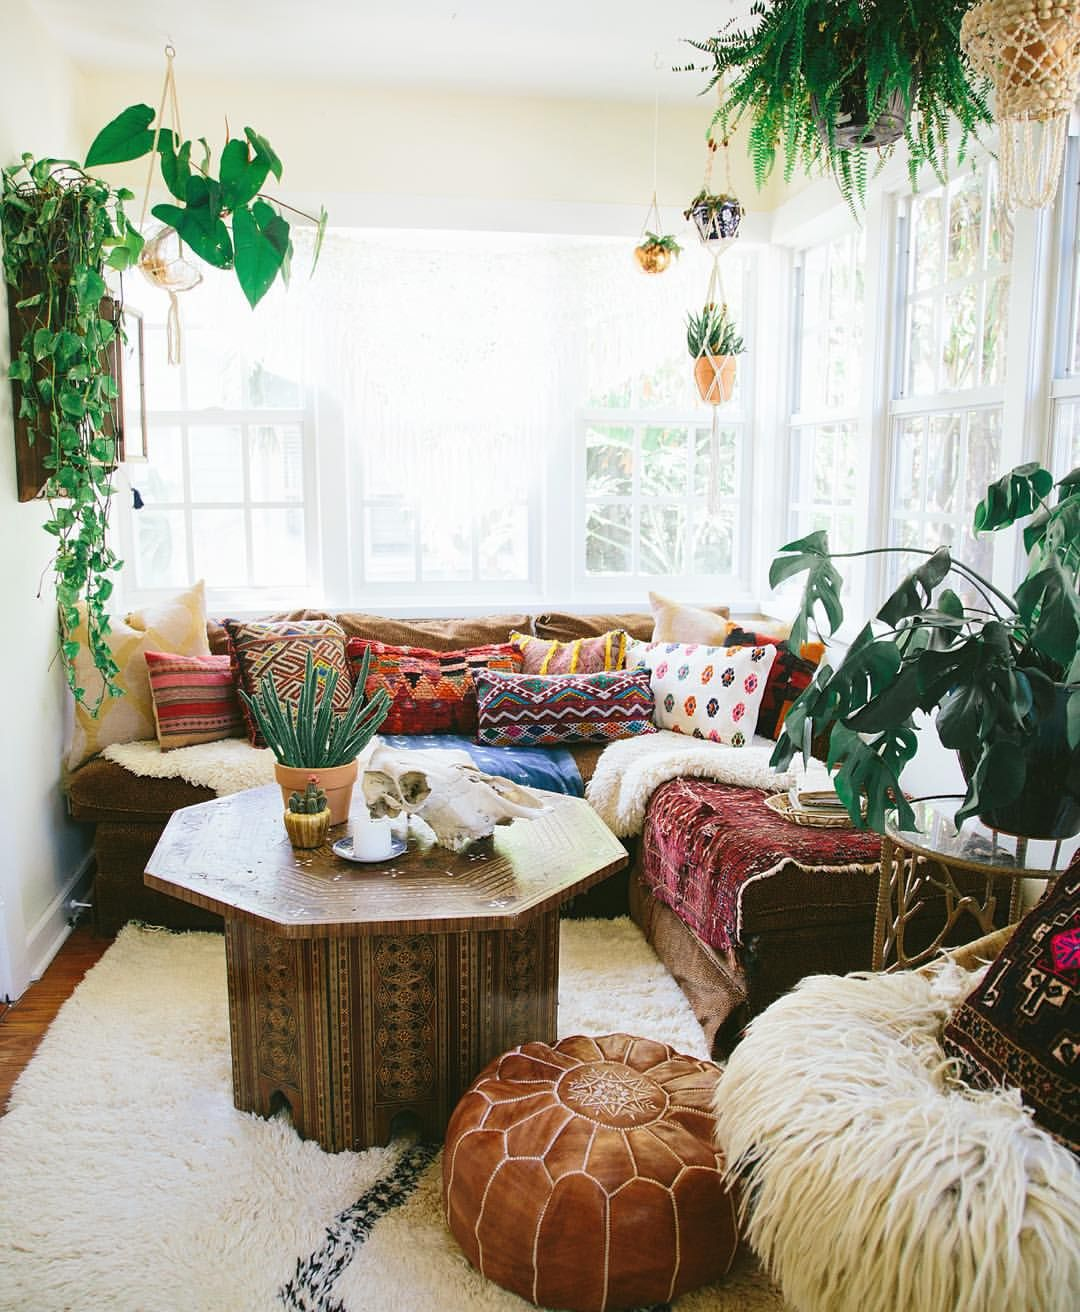 Finding peace in my little neverland.#bohostyle #bohemiandecor - a ...